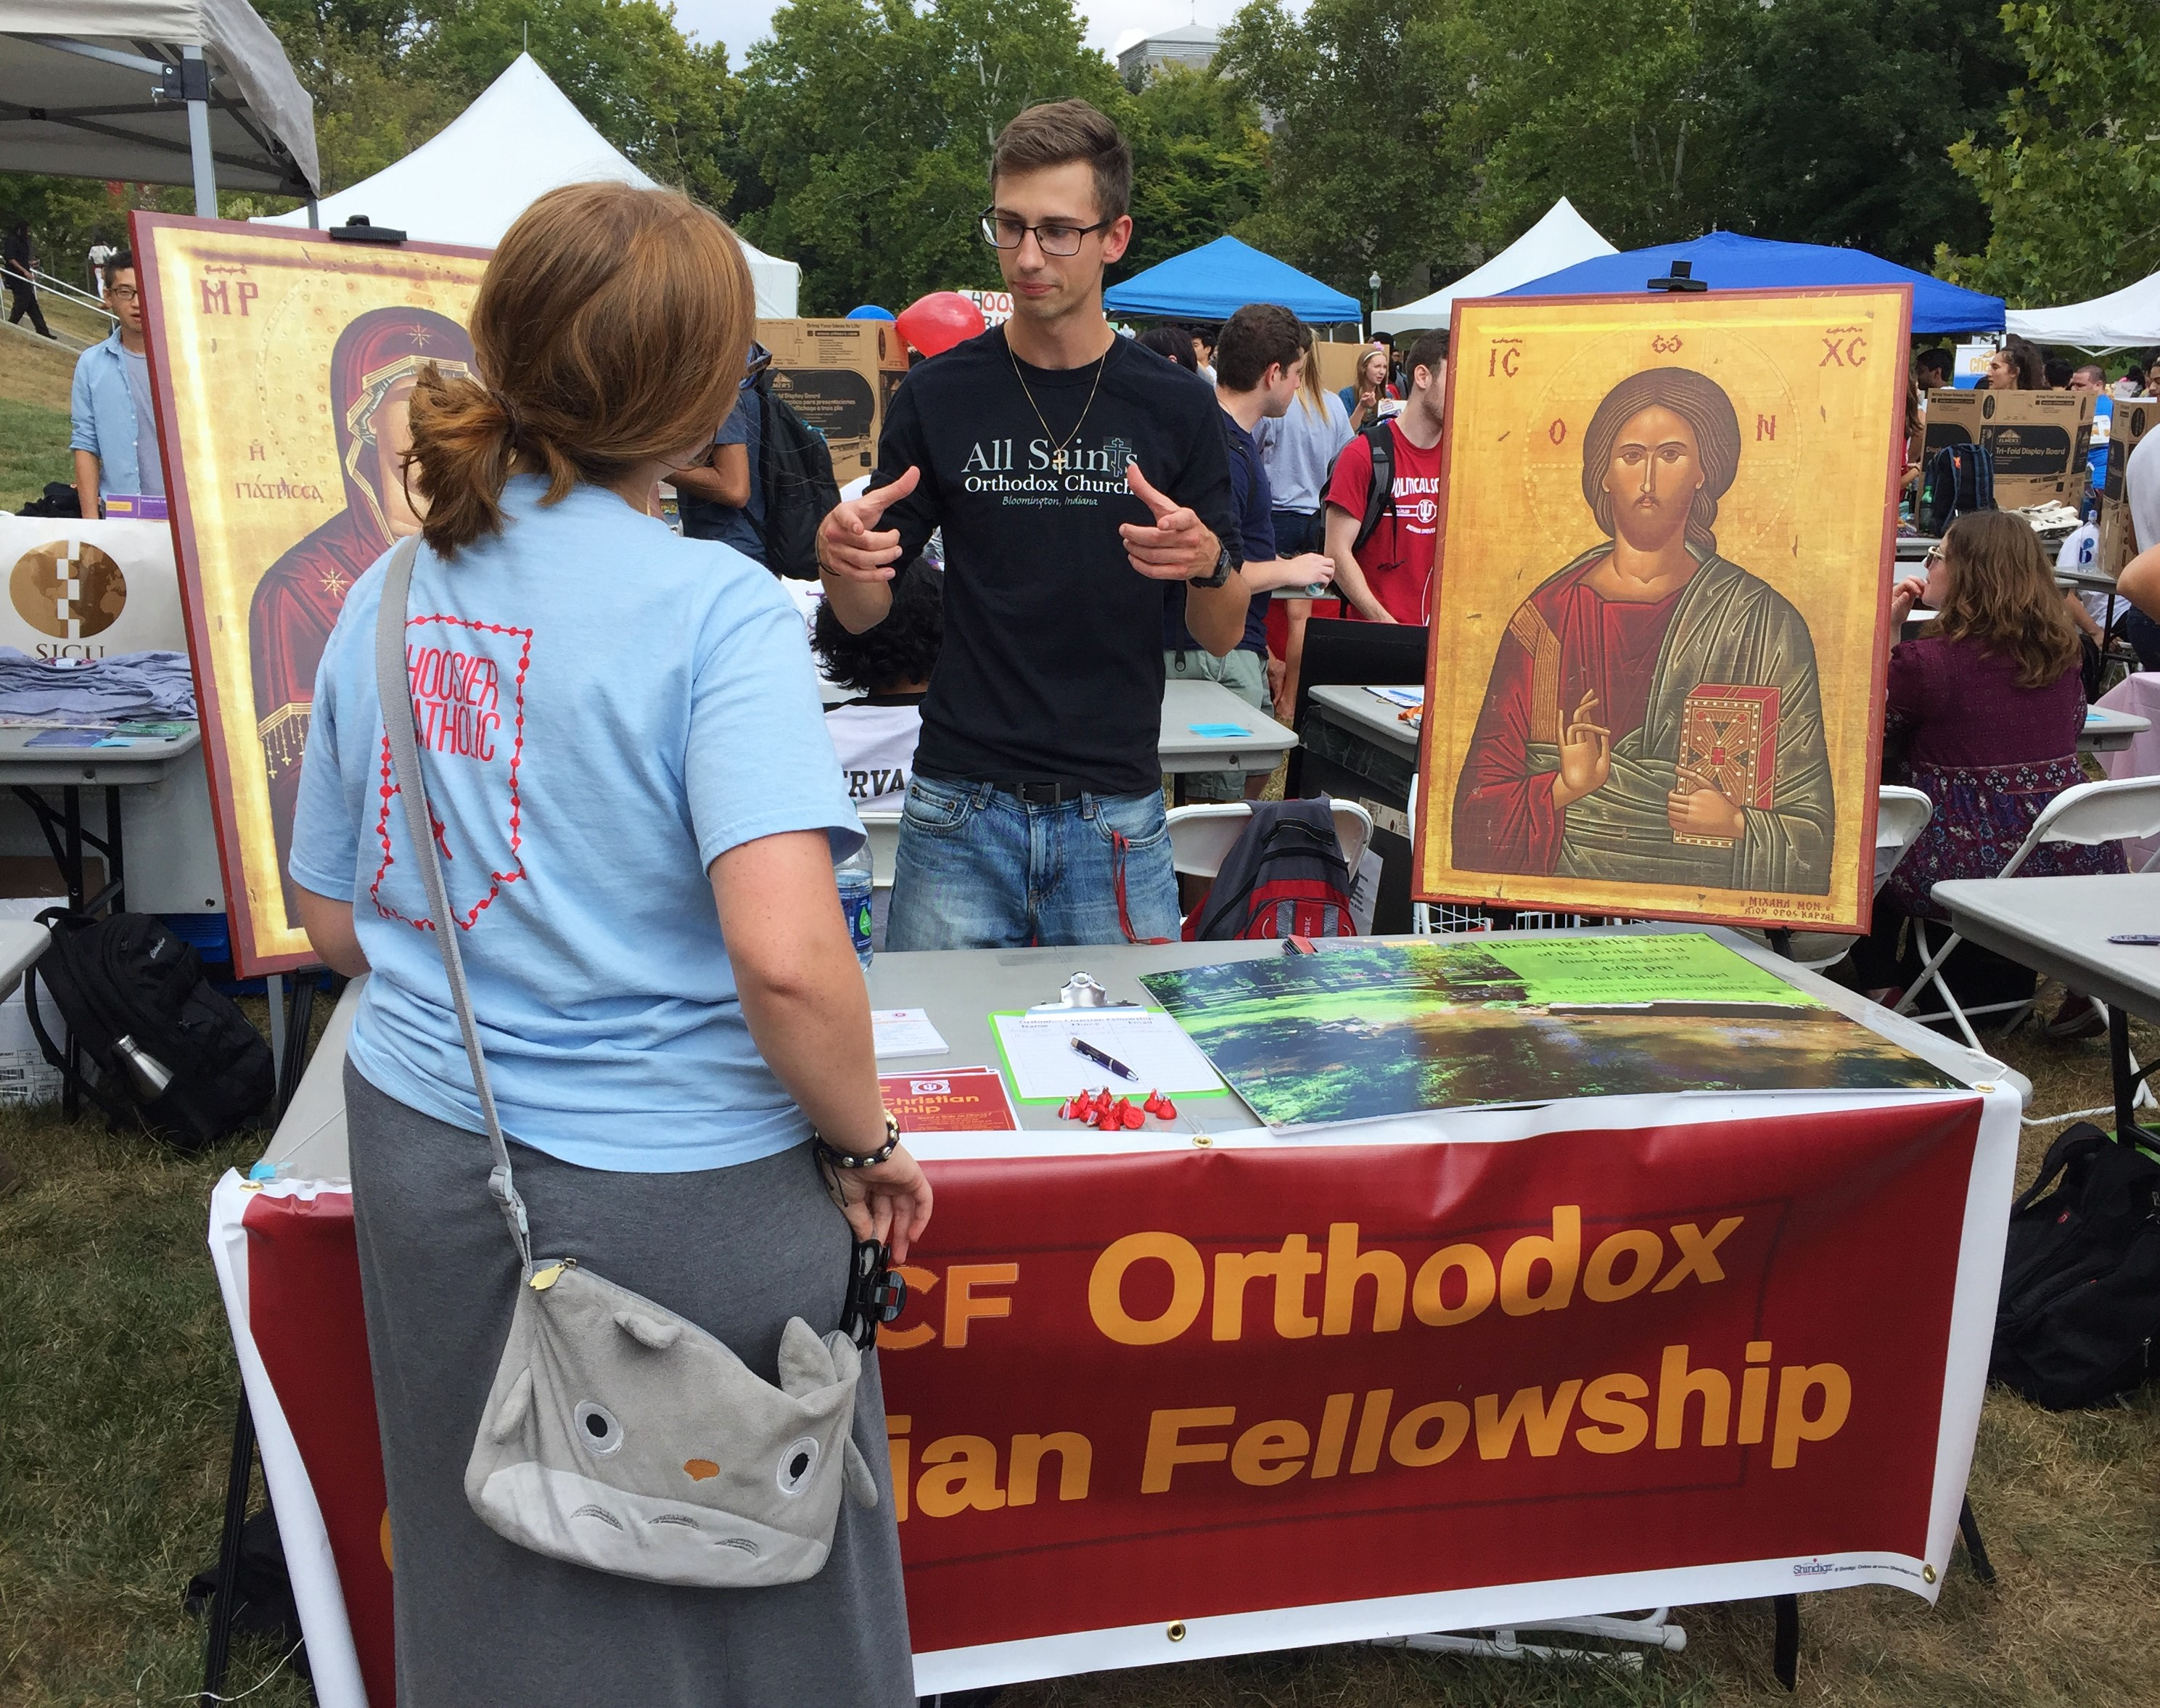 Jacob introduces OCF at the Student Involvement Fair